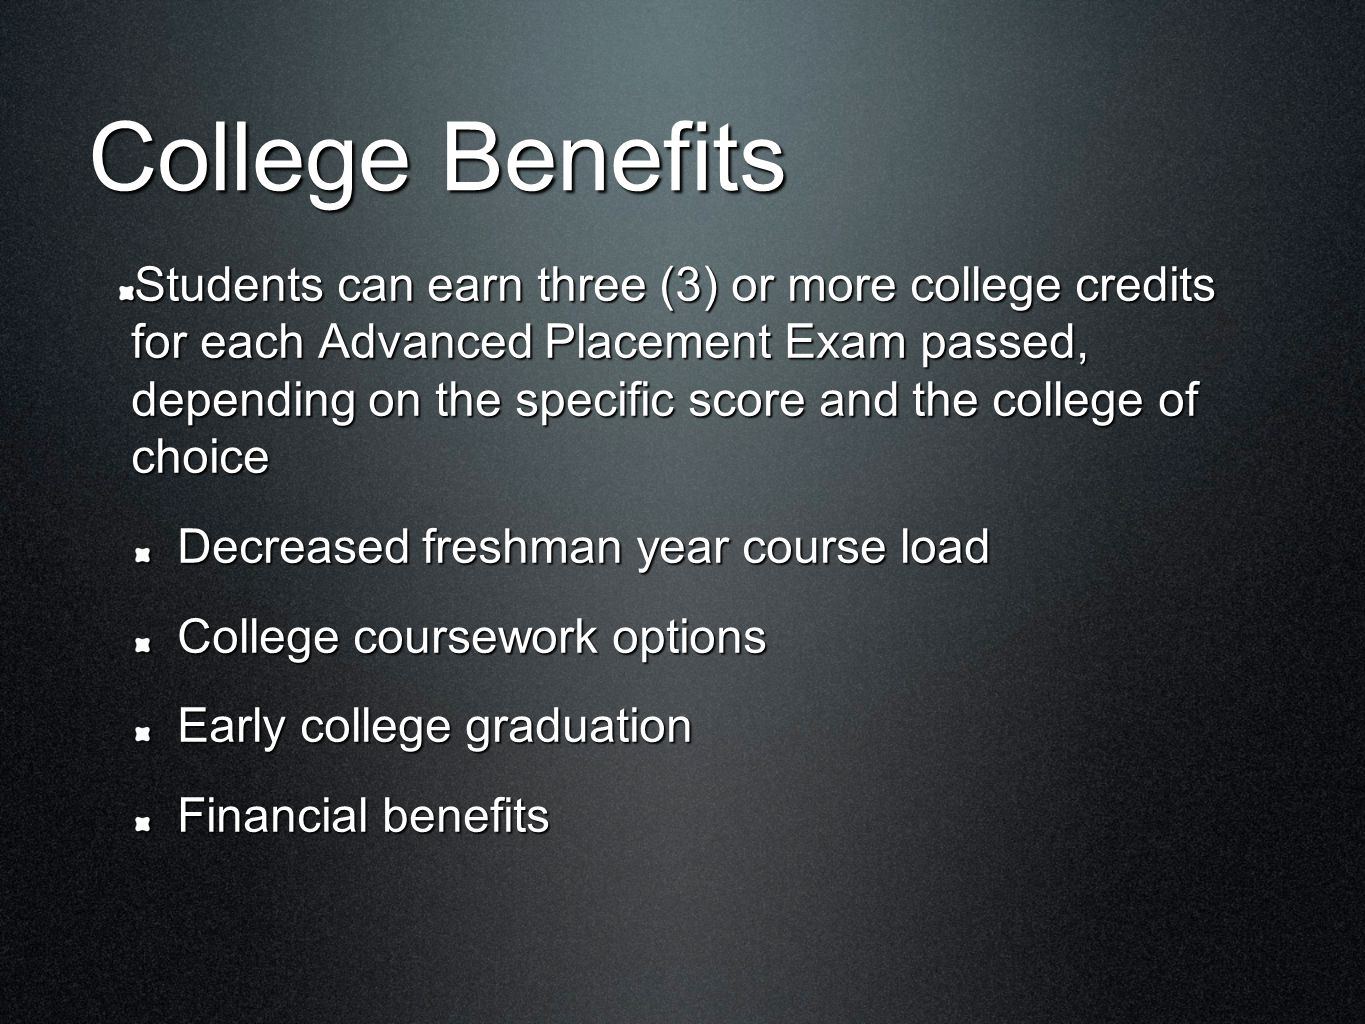 College Benefits Students can earn three (3) or more college credits for each Advanced Placement Exam passed, depending on the specific score and the